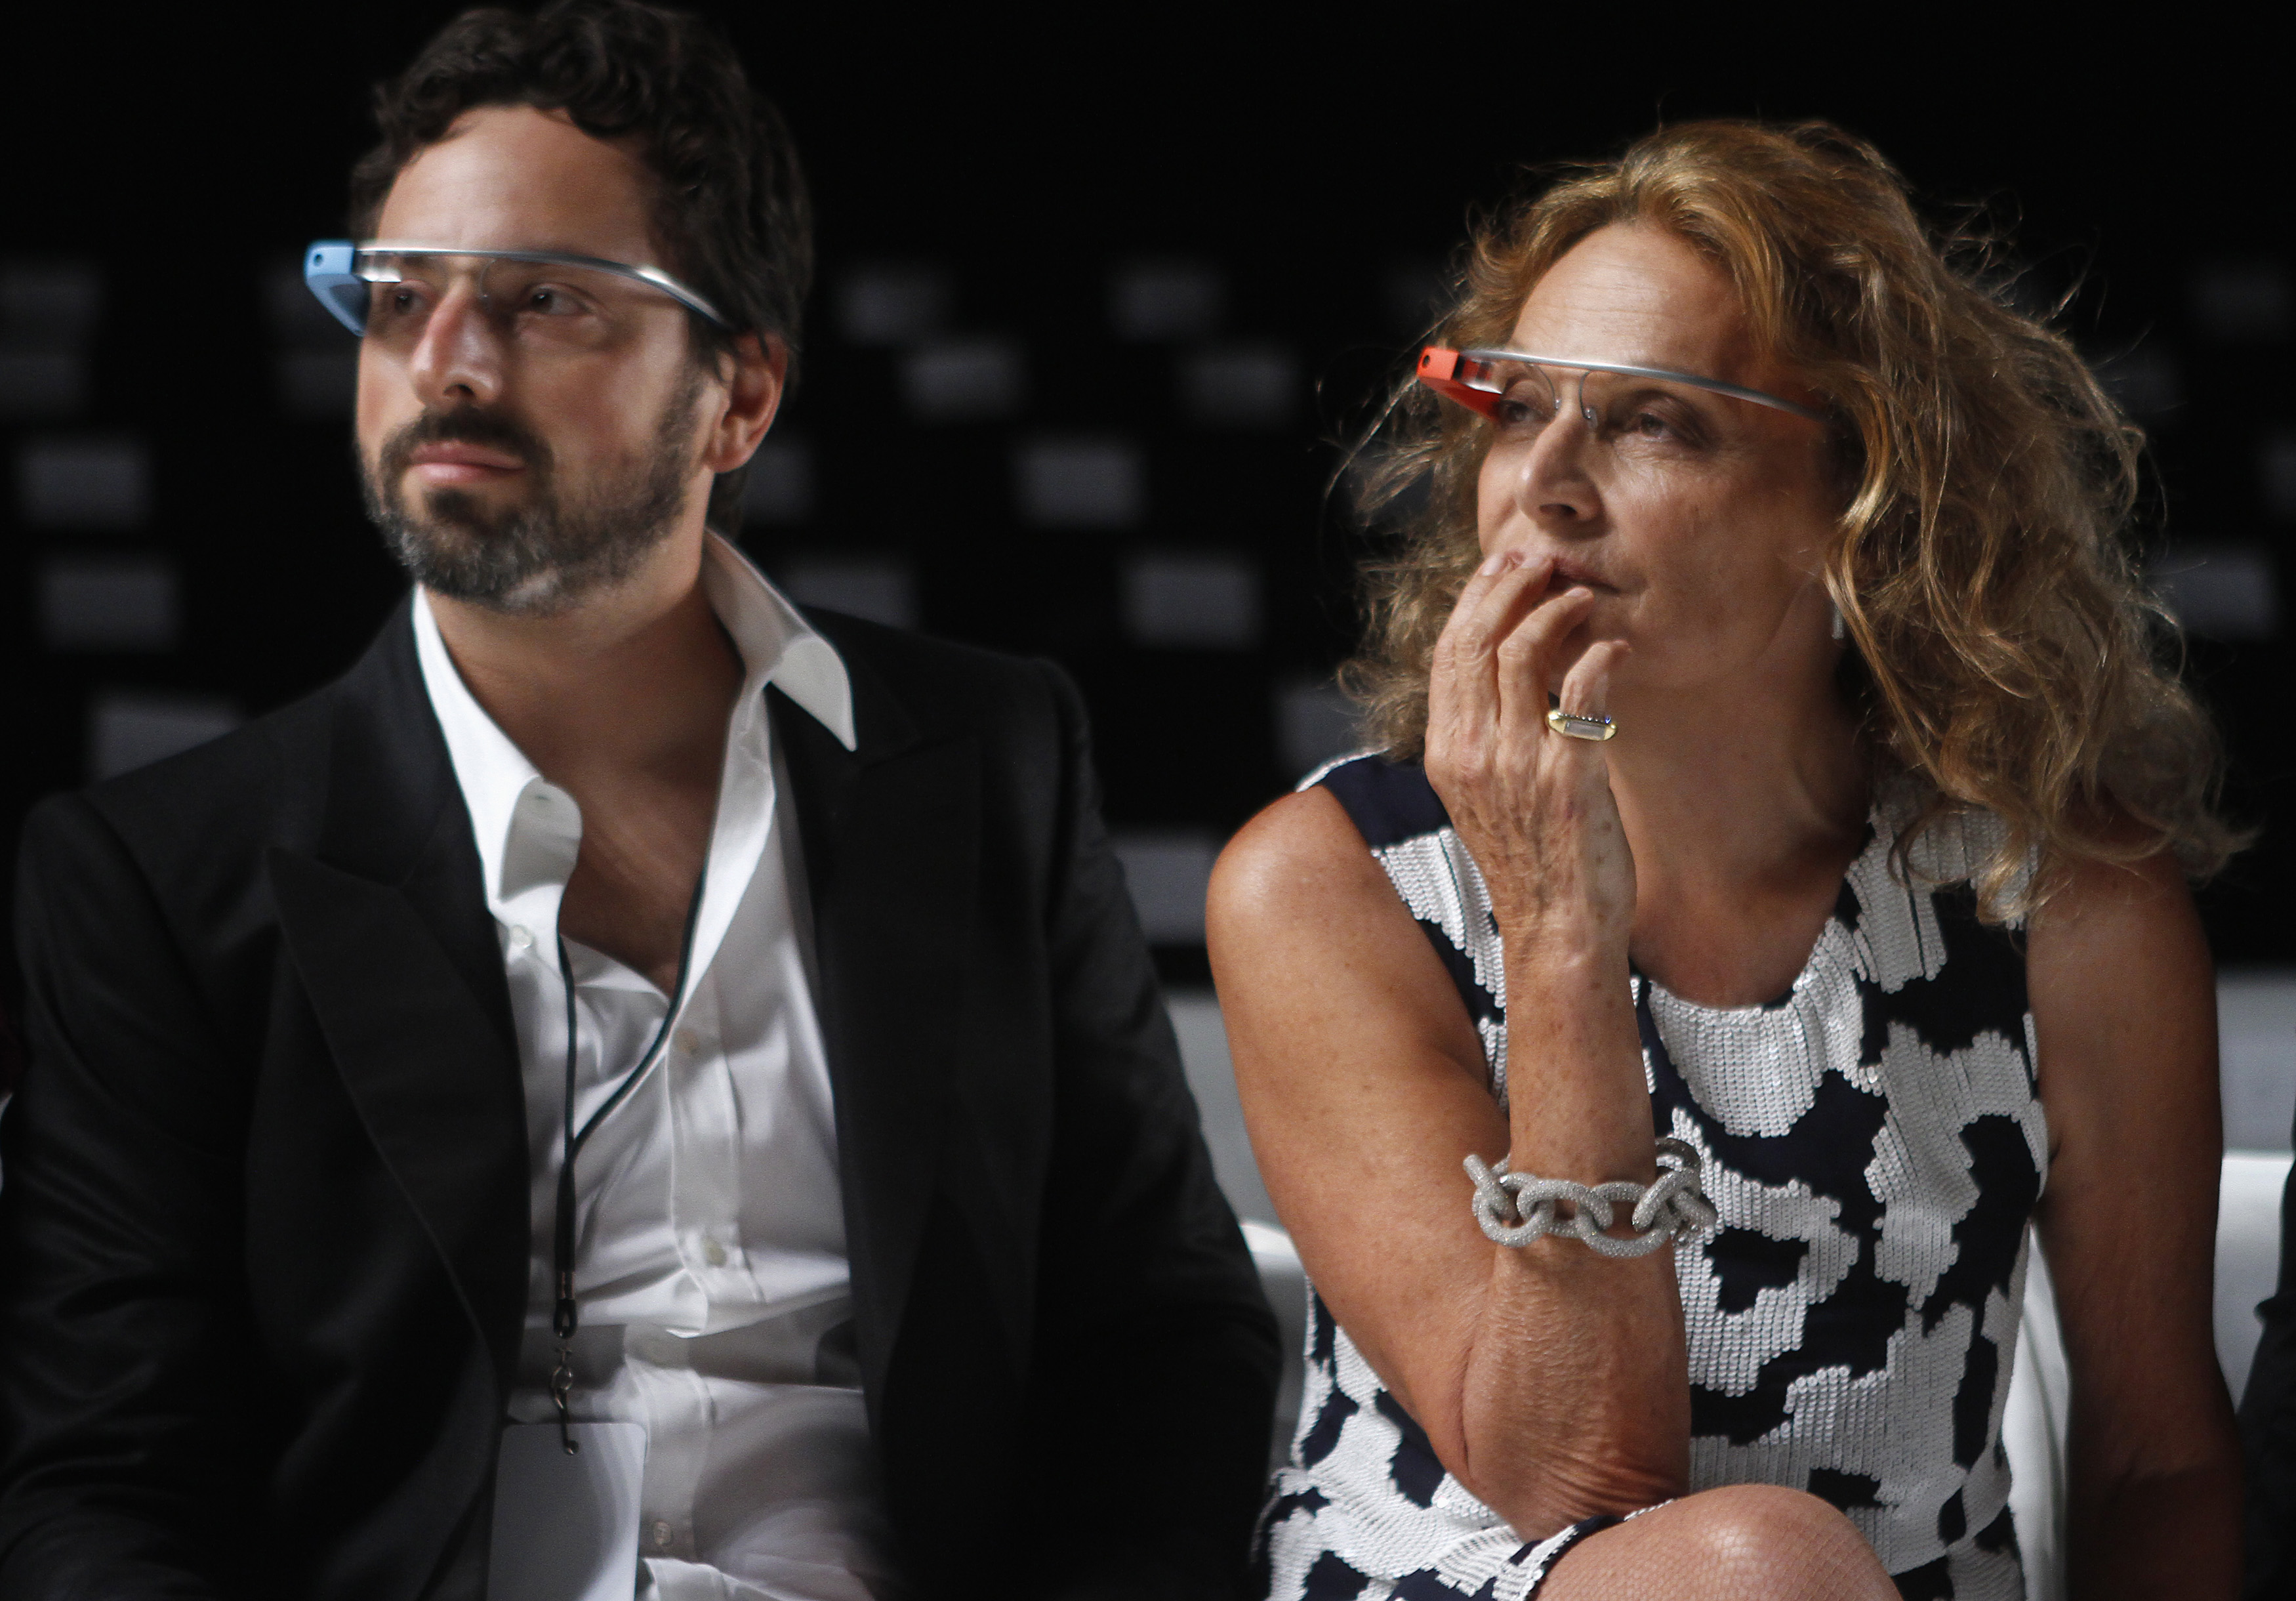 Google founder Sergey Brin (L) and designer Diane von Furstenberg sit and watch the rehearsal for her Spring/Summer 2013 collection show during New York Fashion Week September 9, 2012. The show was used as a launching event for Google's new product